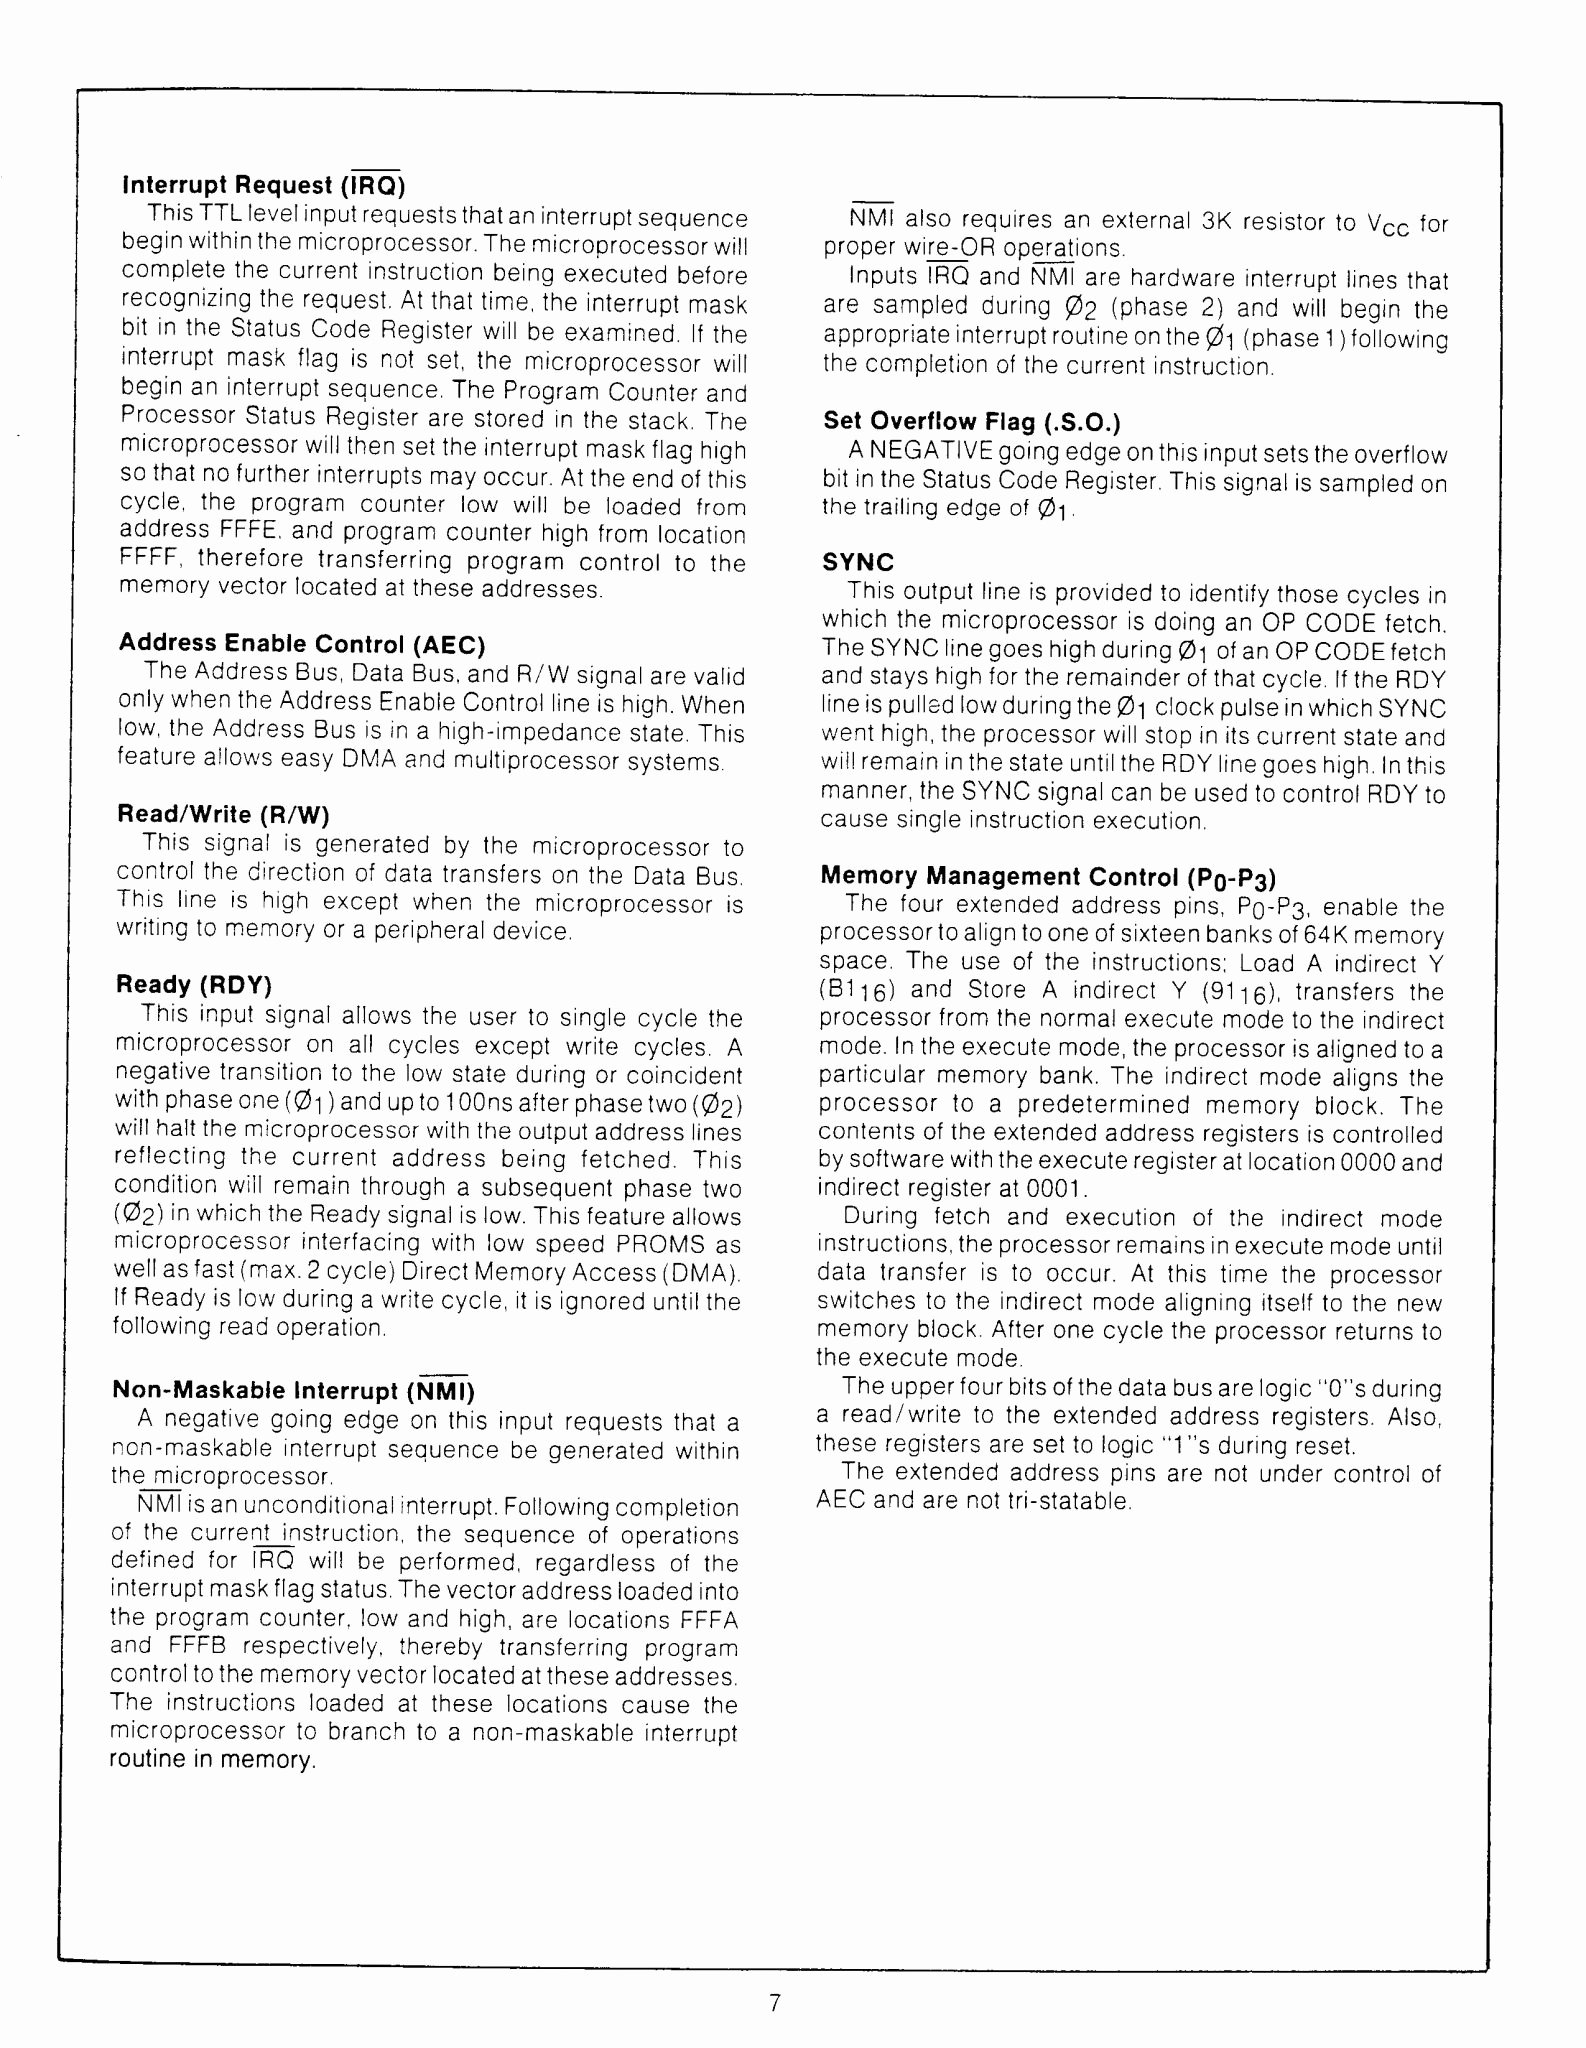 Nova Hunting the Elements Worksheet Kids Nova Hunting the Elements Worksheet Answer Key